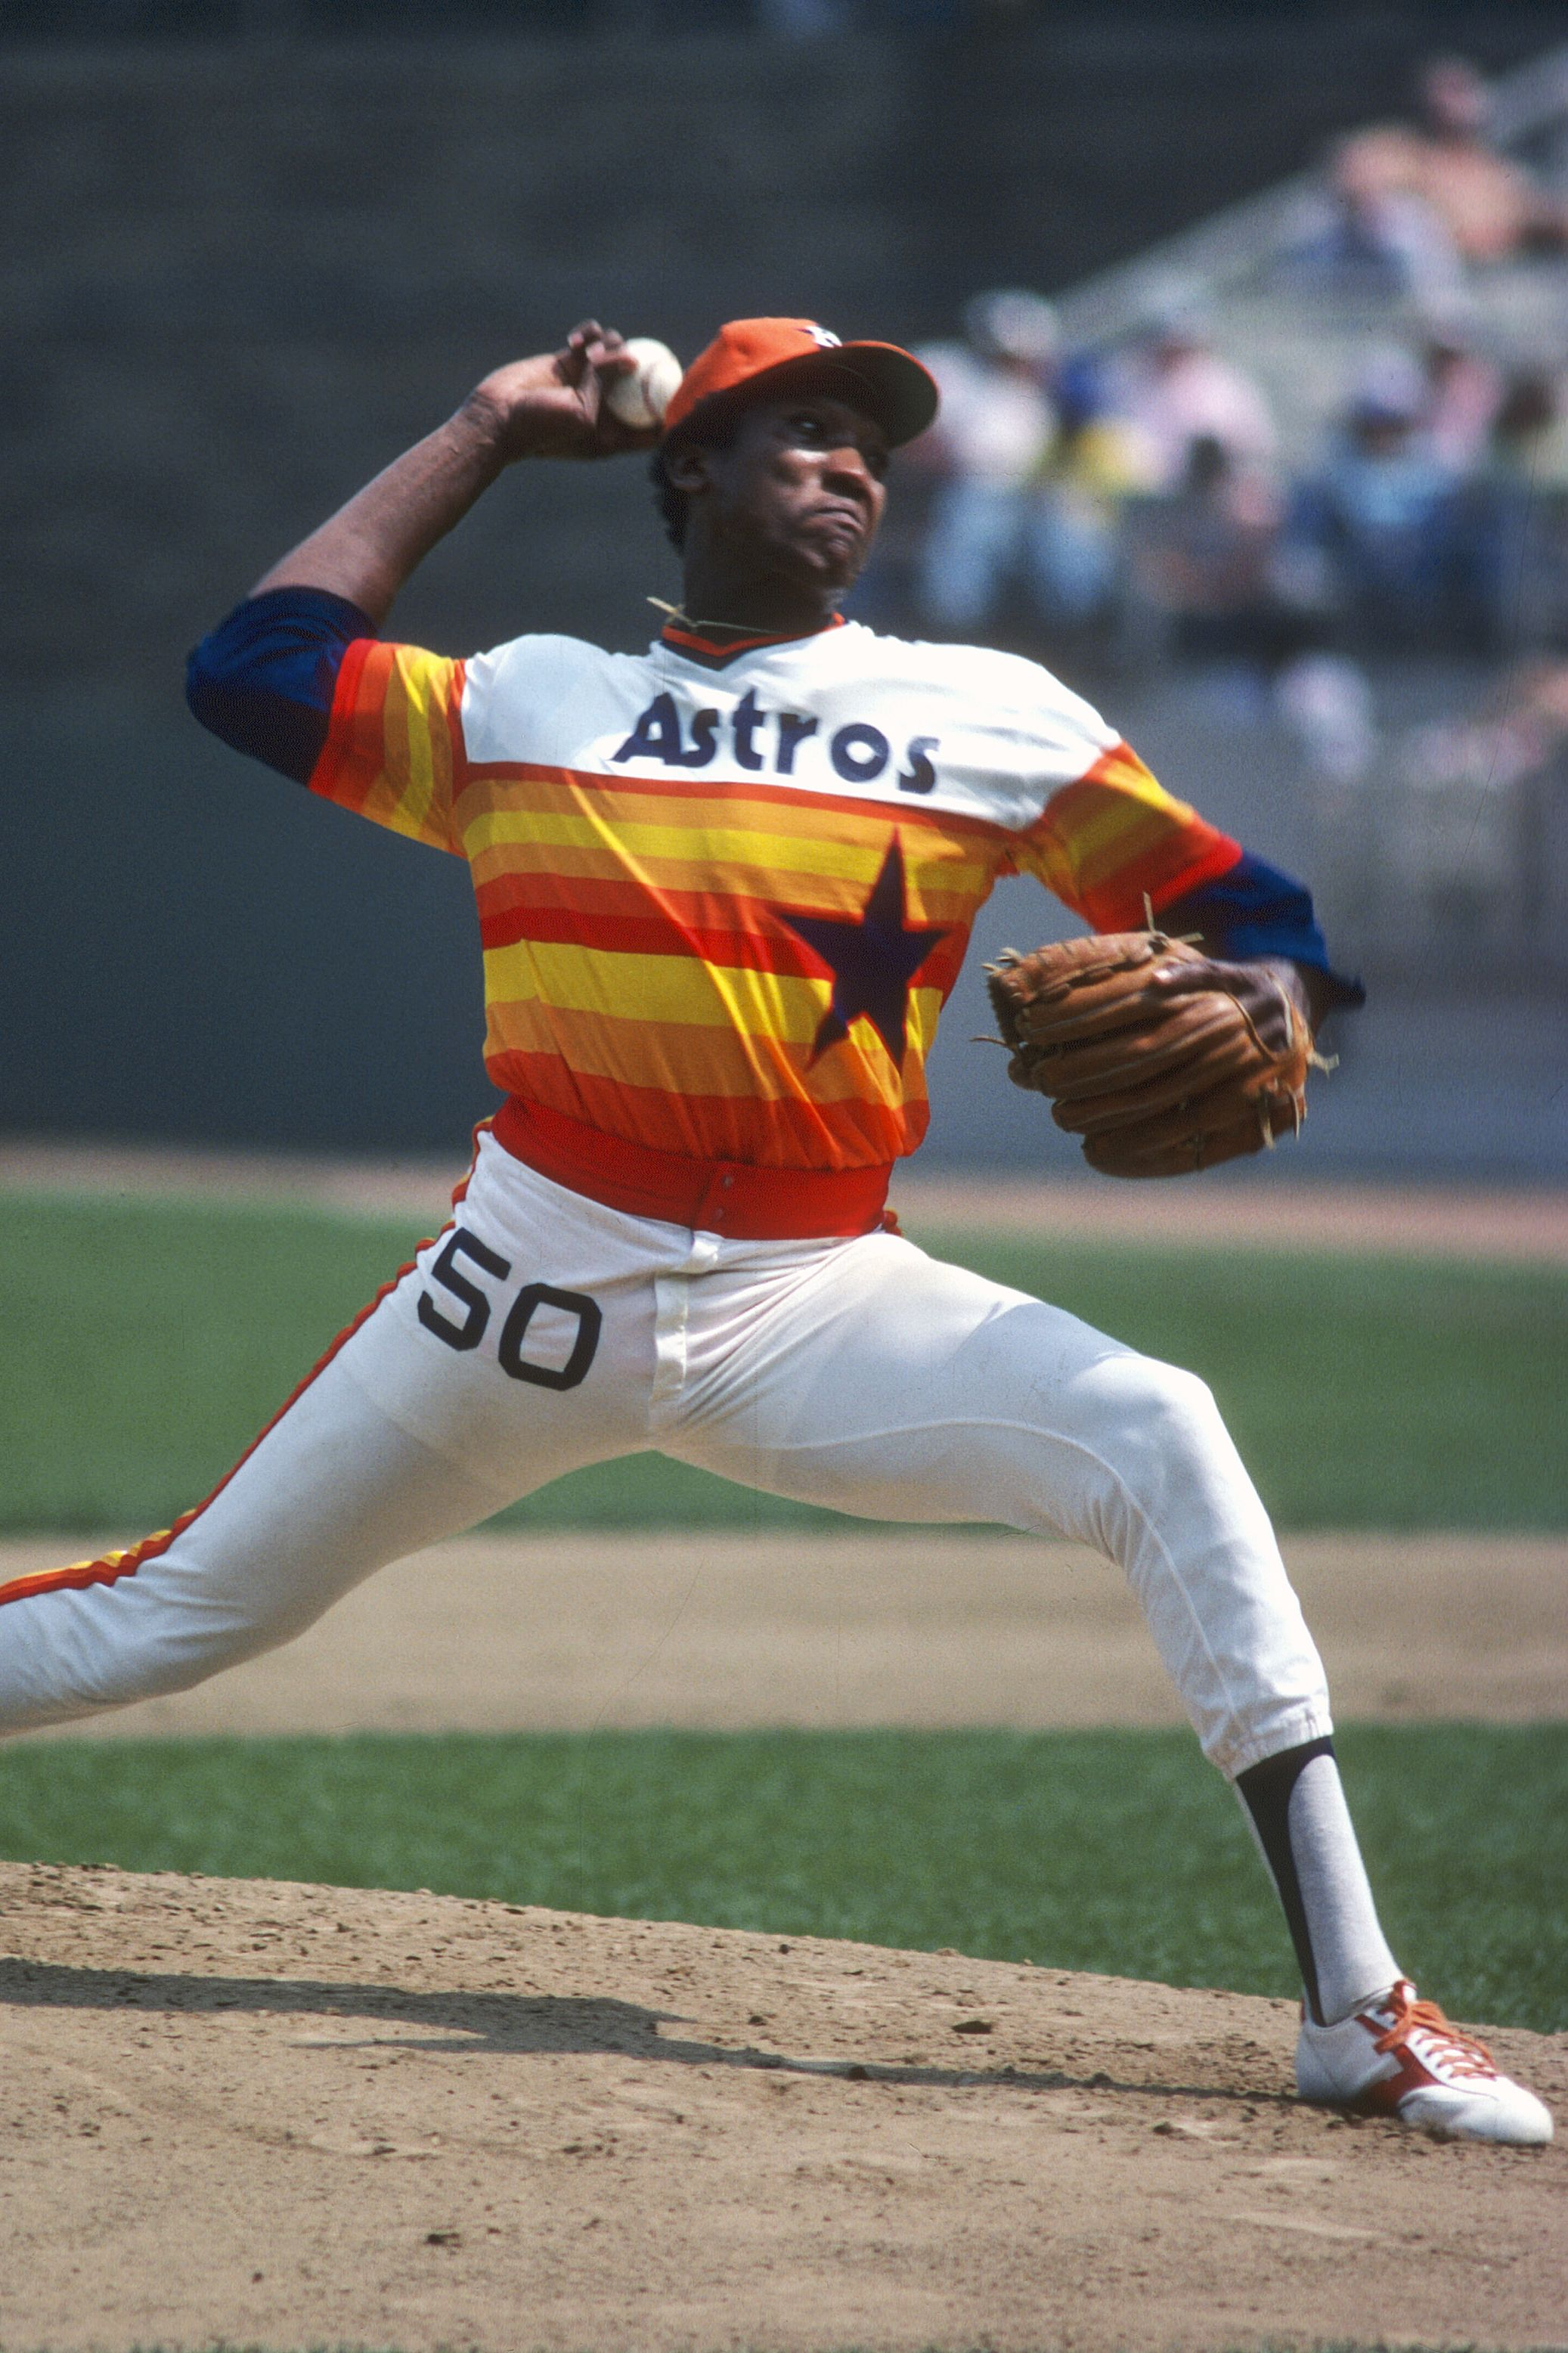 super popular ee5a9 df6cc Best and Worst Baseball Uniforms - History's Best and Worst ...